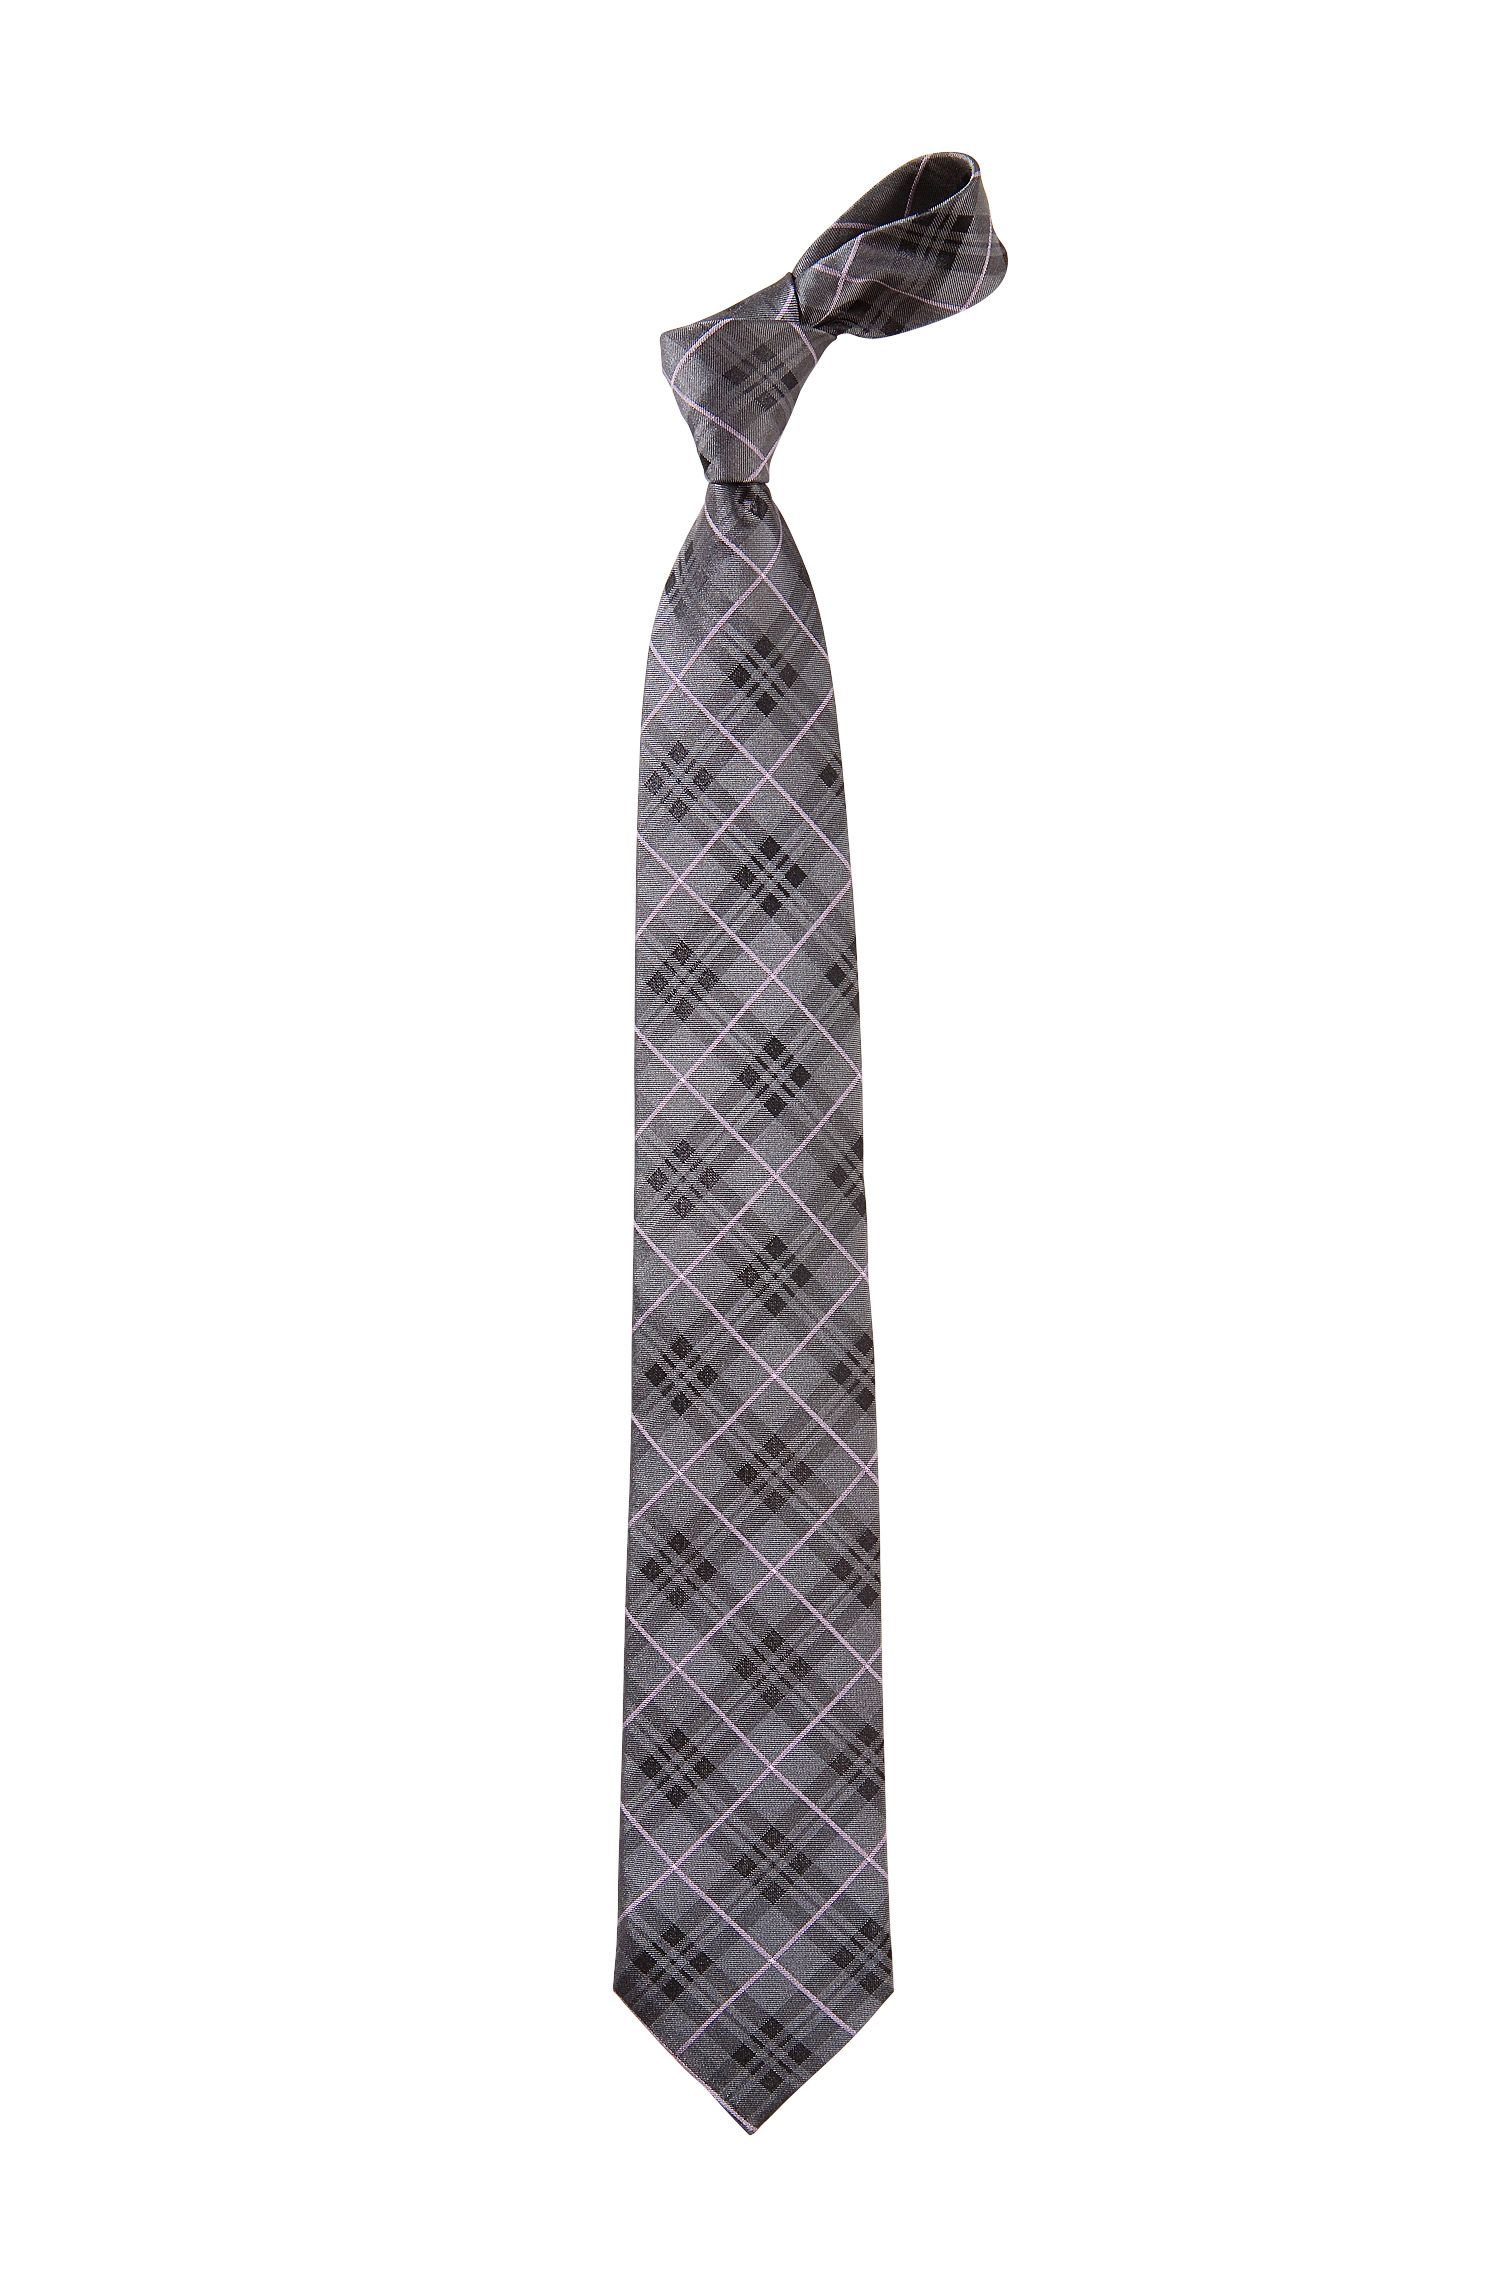 Travellerline-das ´Tie 7,5 cm traveller`